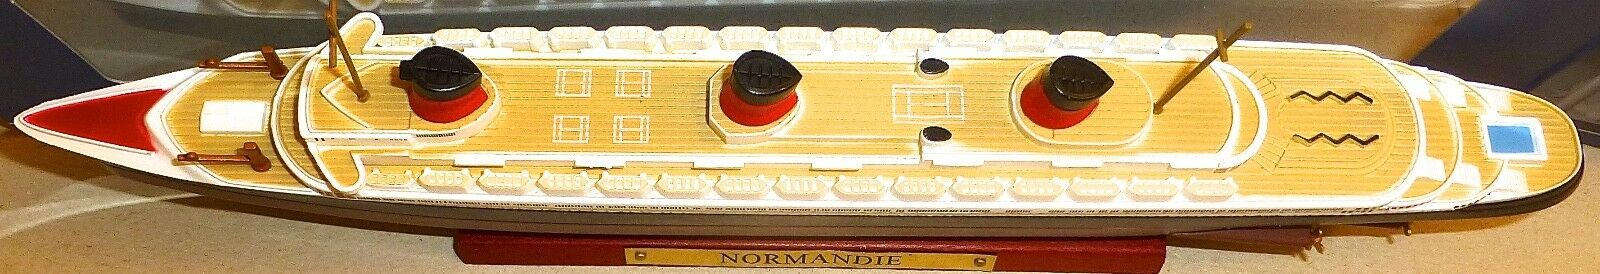 Normandie Schiffsmodell ATLAS French Lines  neu in Box 1:1250 NEU OVP UI2 µ *